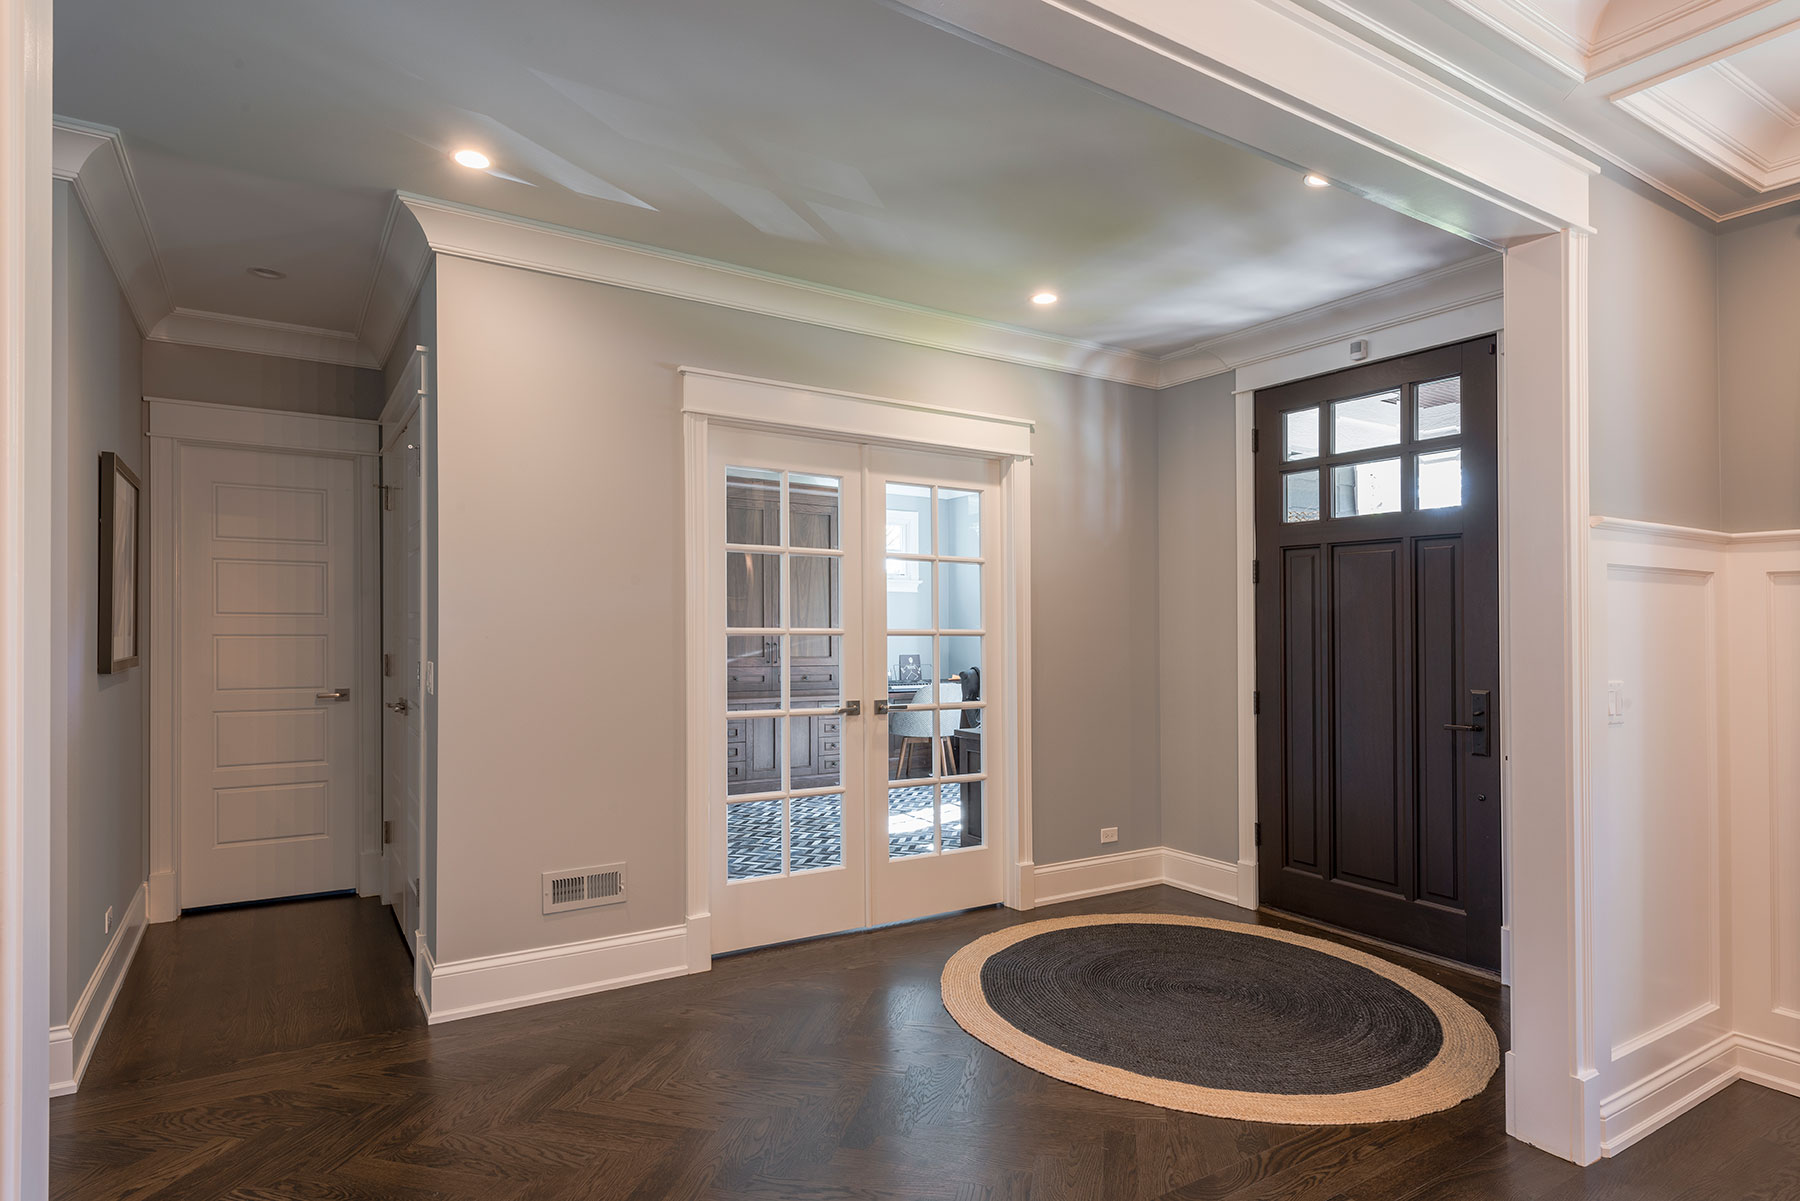 Custom Wood Front Entry Doors | 5-Panel Paint Grade MDF Single Powder Room Door and Divided lite Clear Glass Office Double Door DB-311PW - Glenview Doors - Custom Doors in Chicago